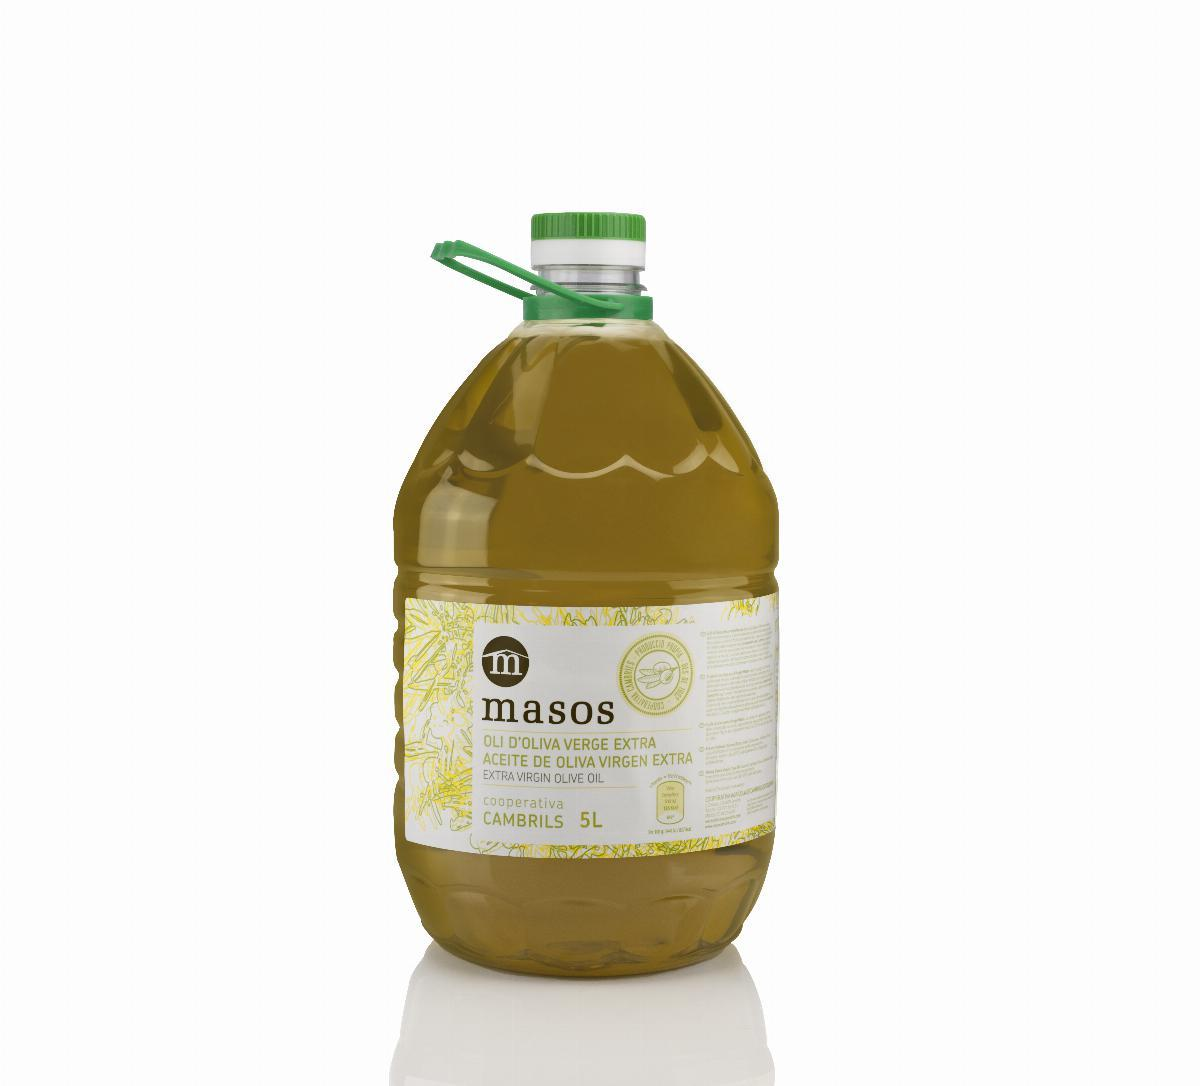 Masos Extra Virgin Olive Oil PET 5 liters